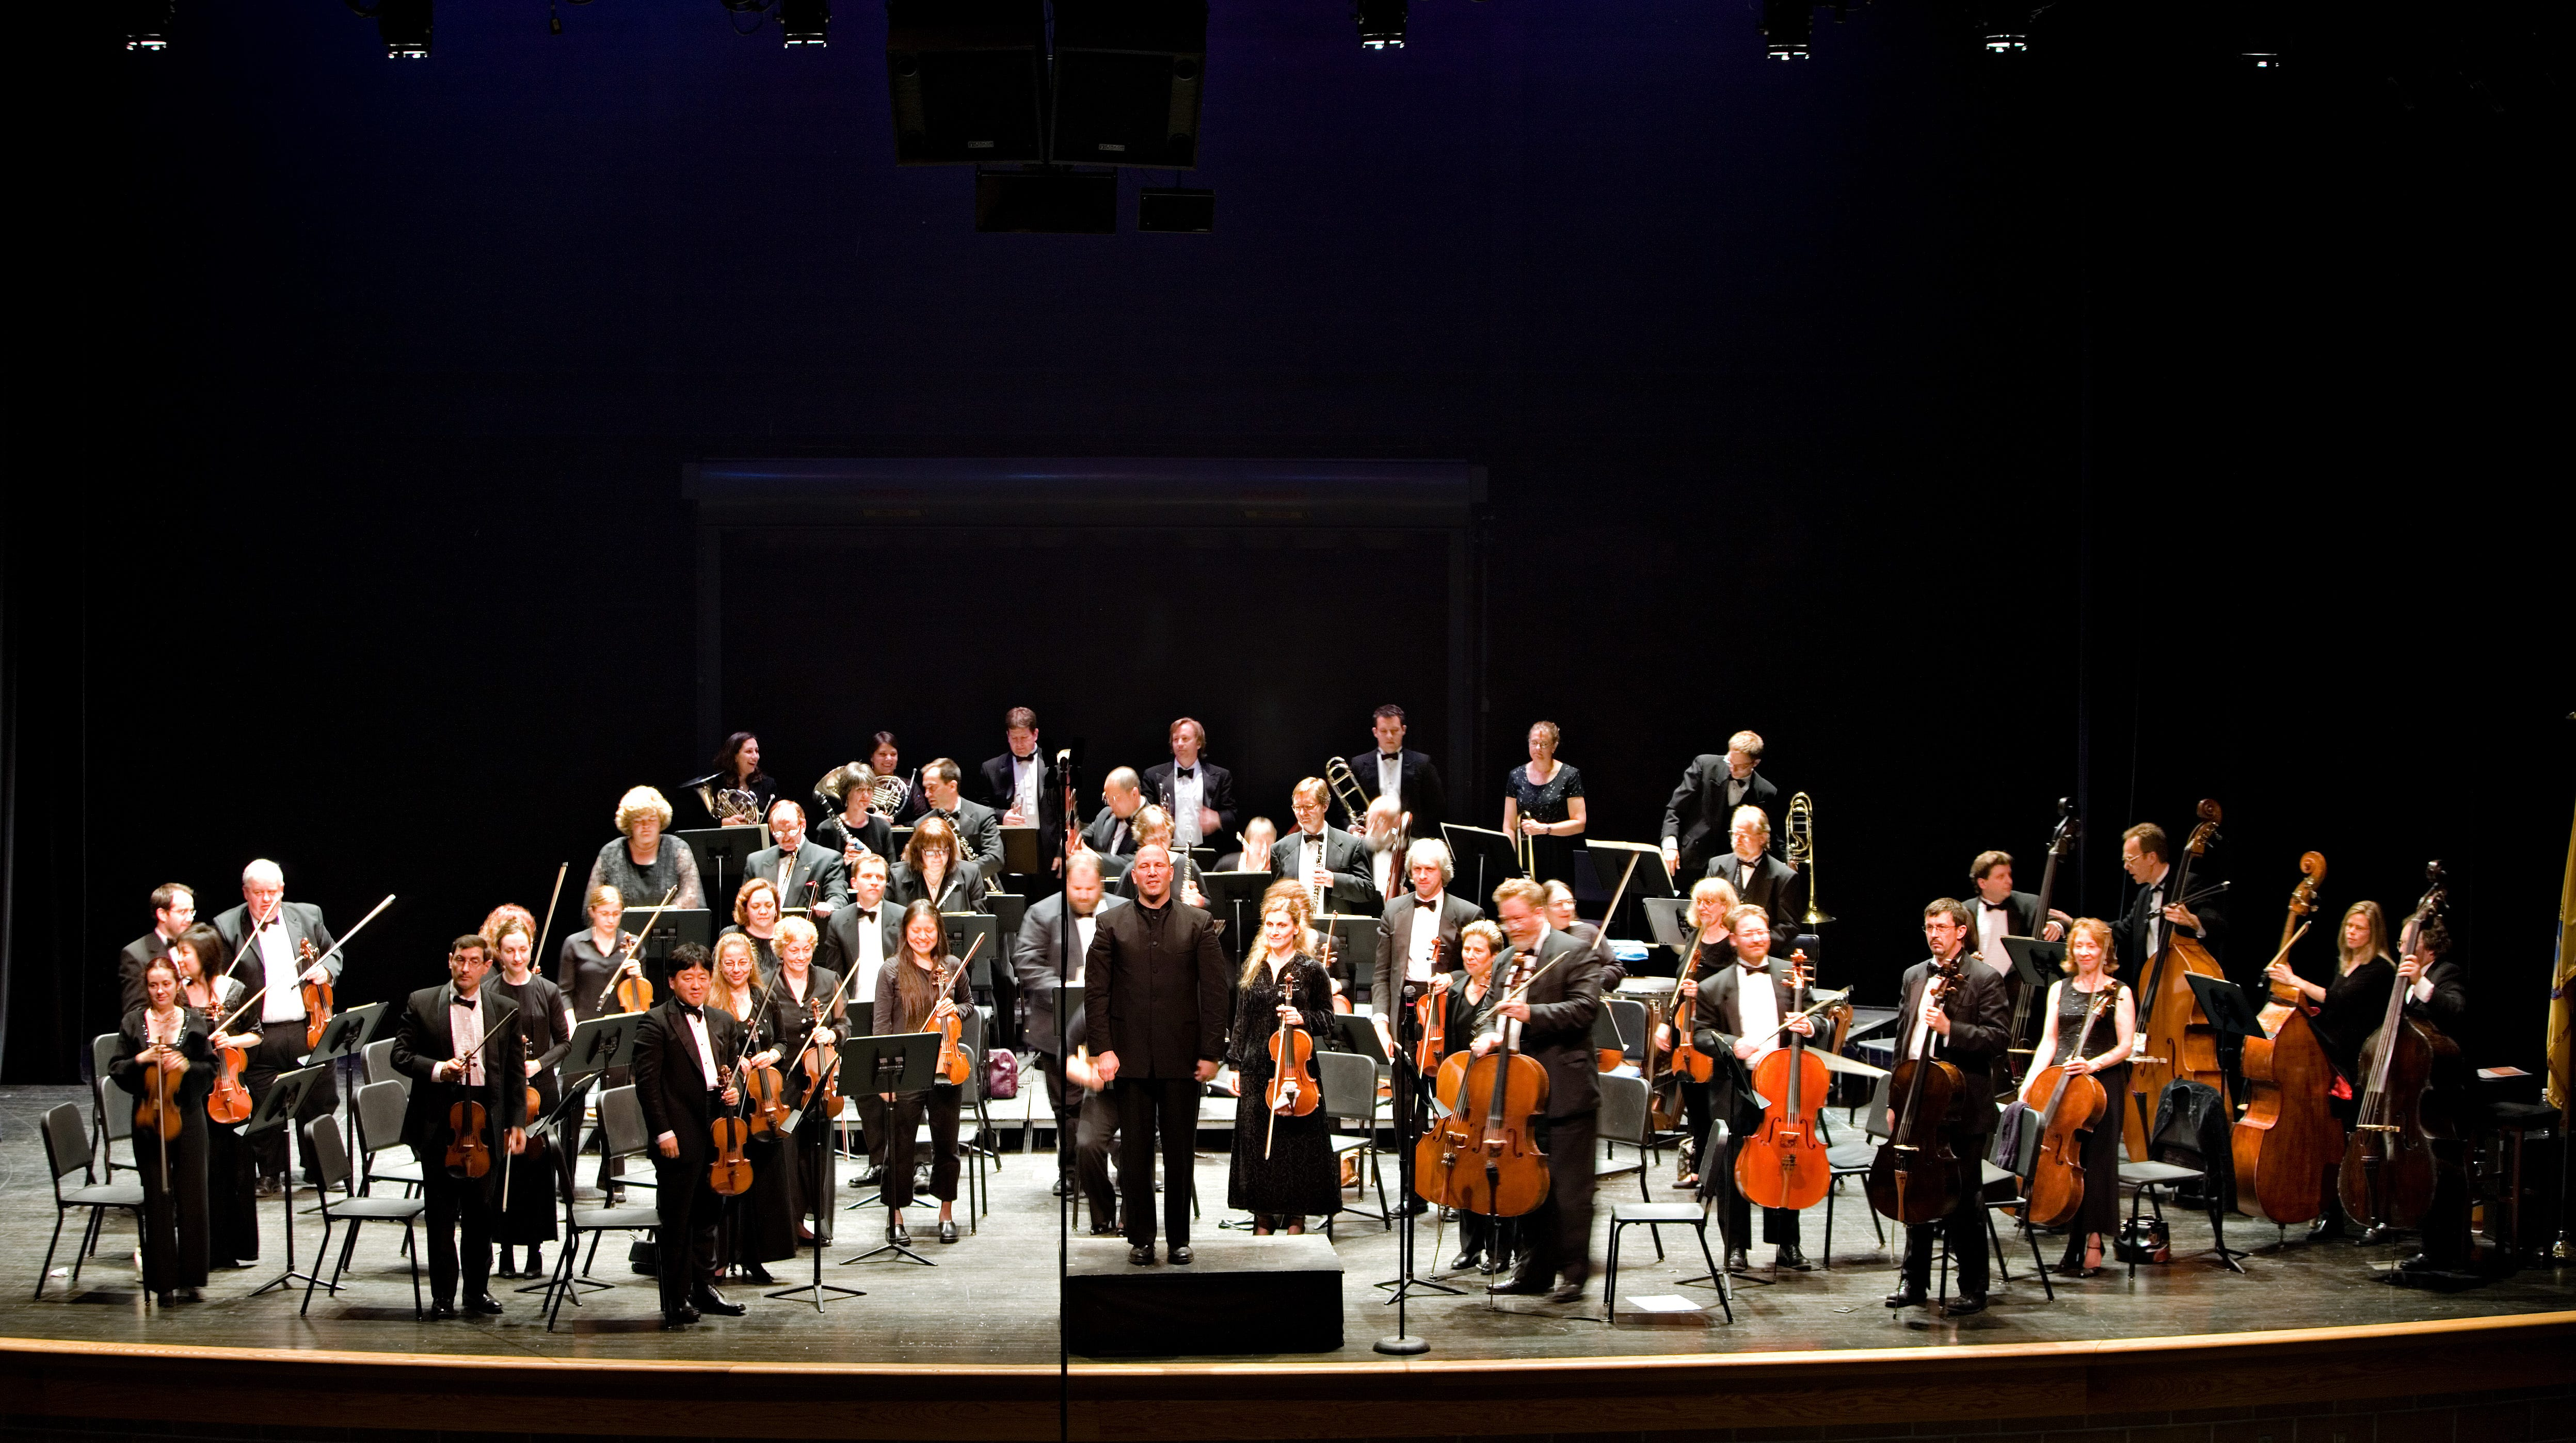 The Bay Atlantic Symphony will open its season with concerts on Oct. 27 at the Landis Theater in Vineland and Oct. 28 at the Stockton Performing Arts Center in Galloway.